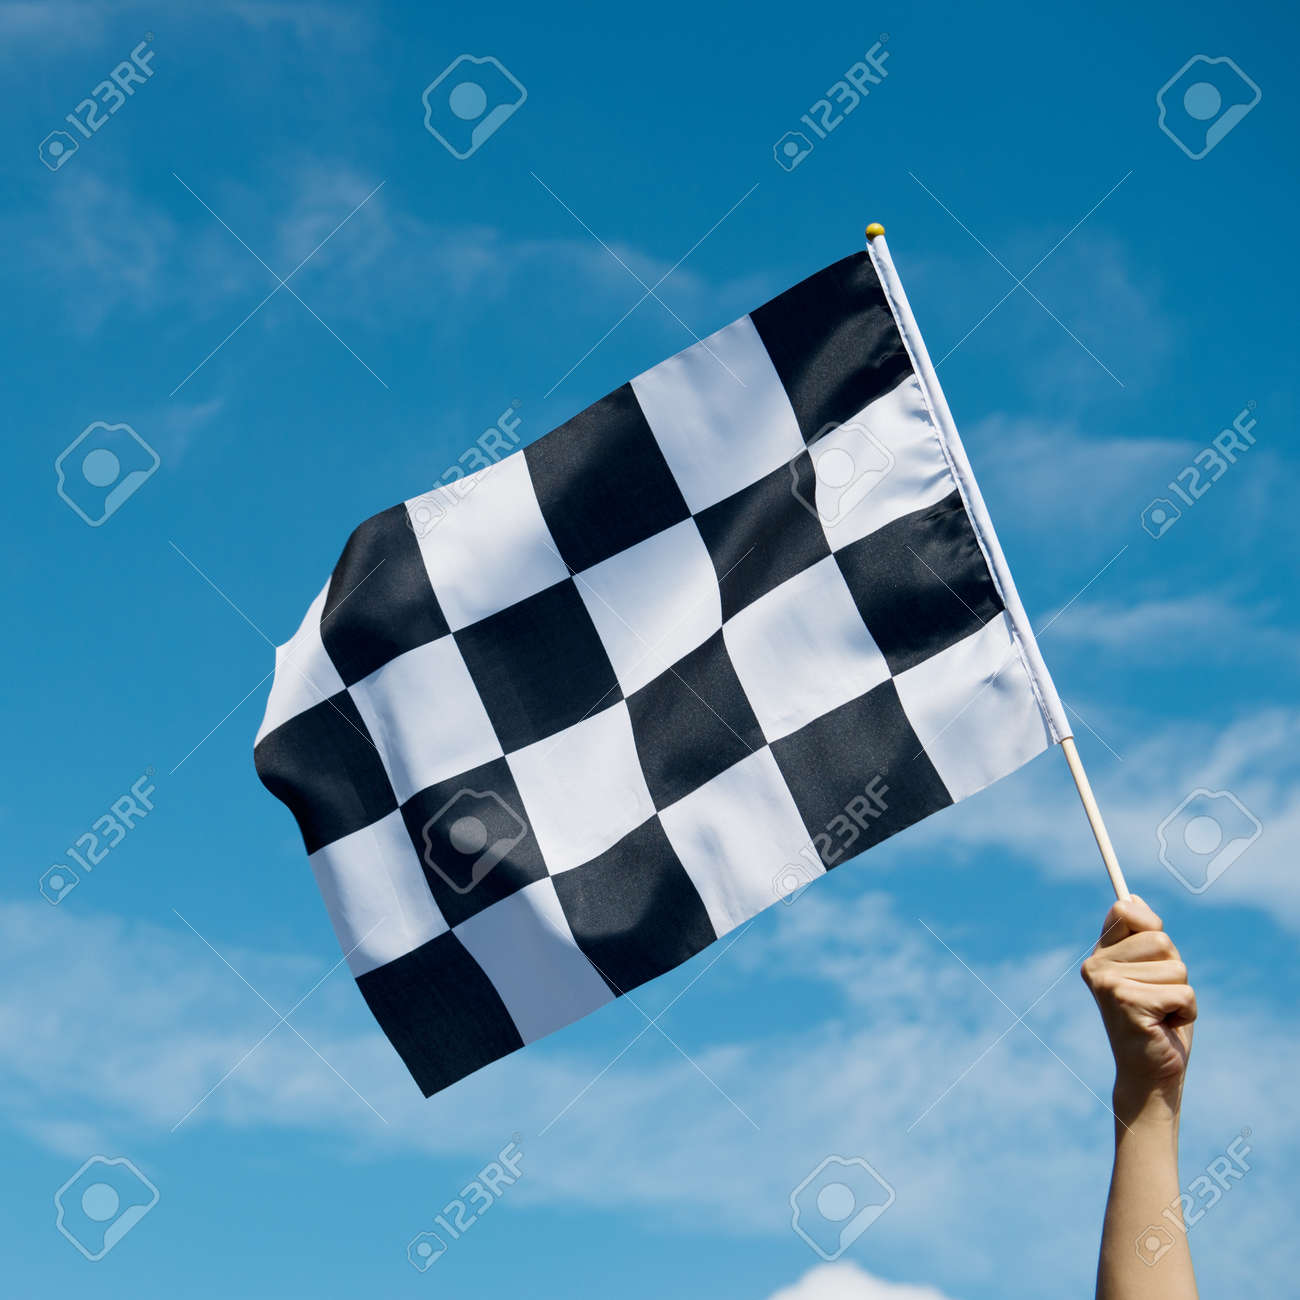 checkered race flag in hand. Stock Photo - 33782635